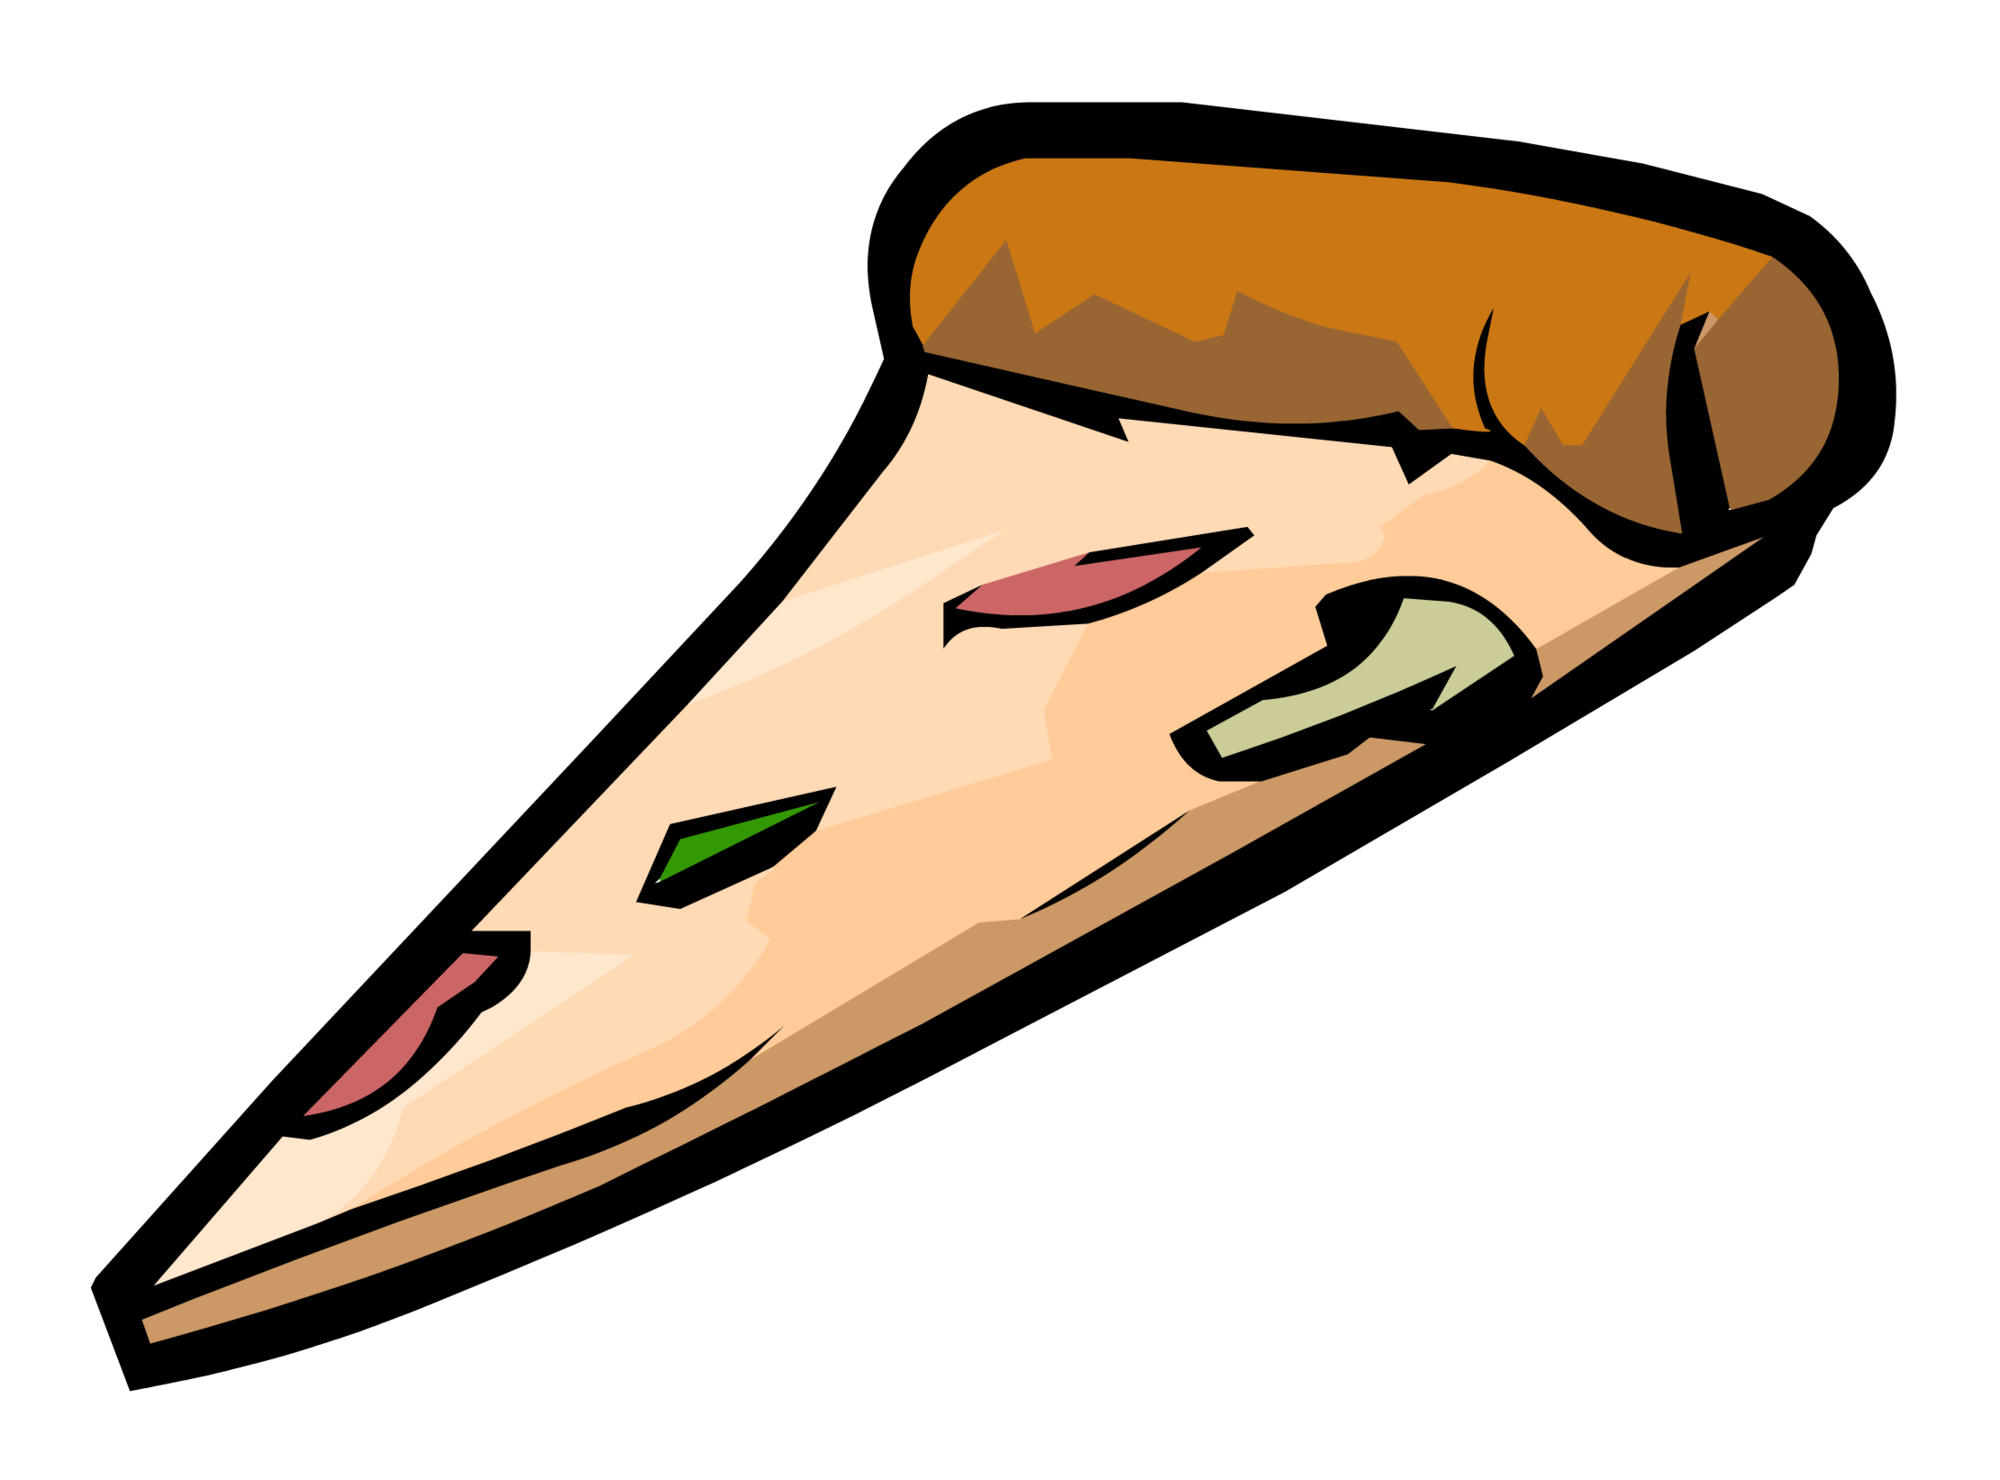 Pizza clip parlor. Image slice pin png